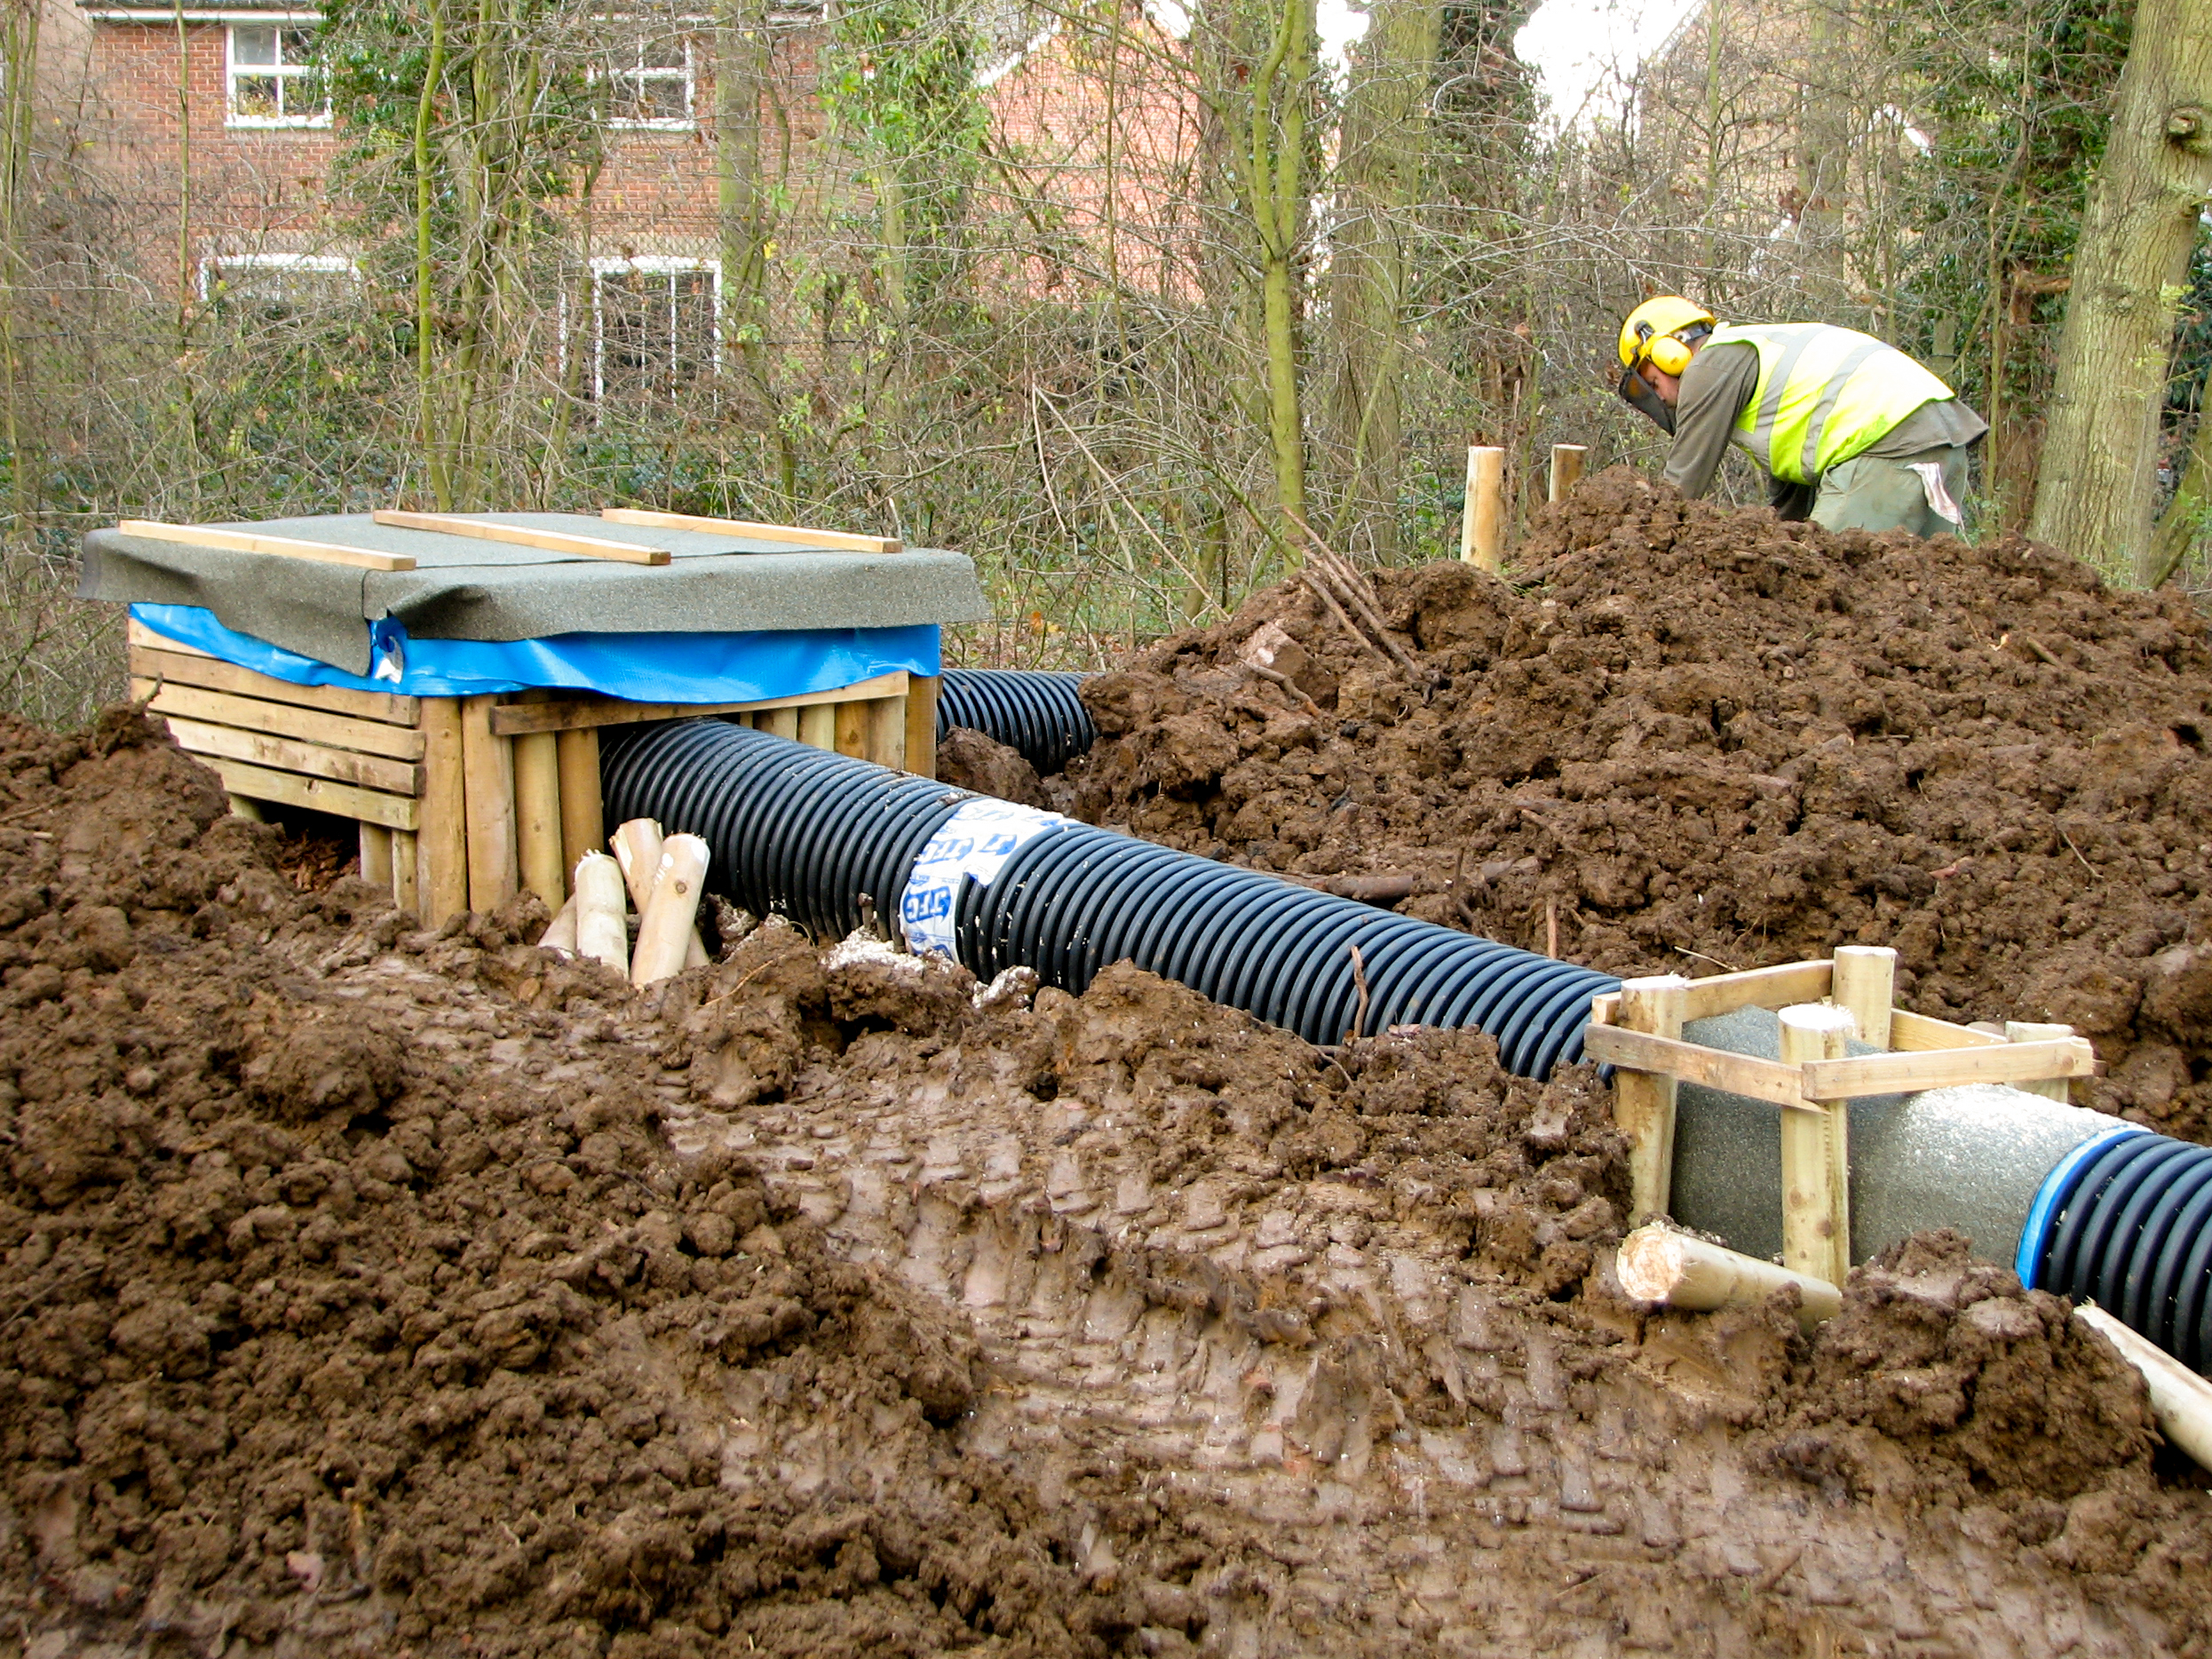 The construction of an artificial badger sett, designed and implemented by LSC Ecologists,